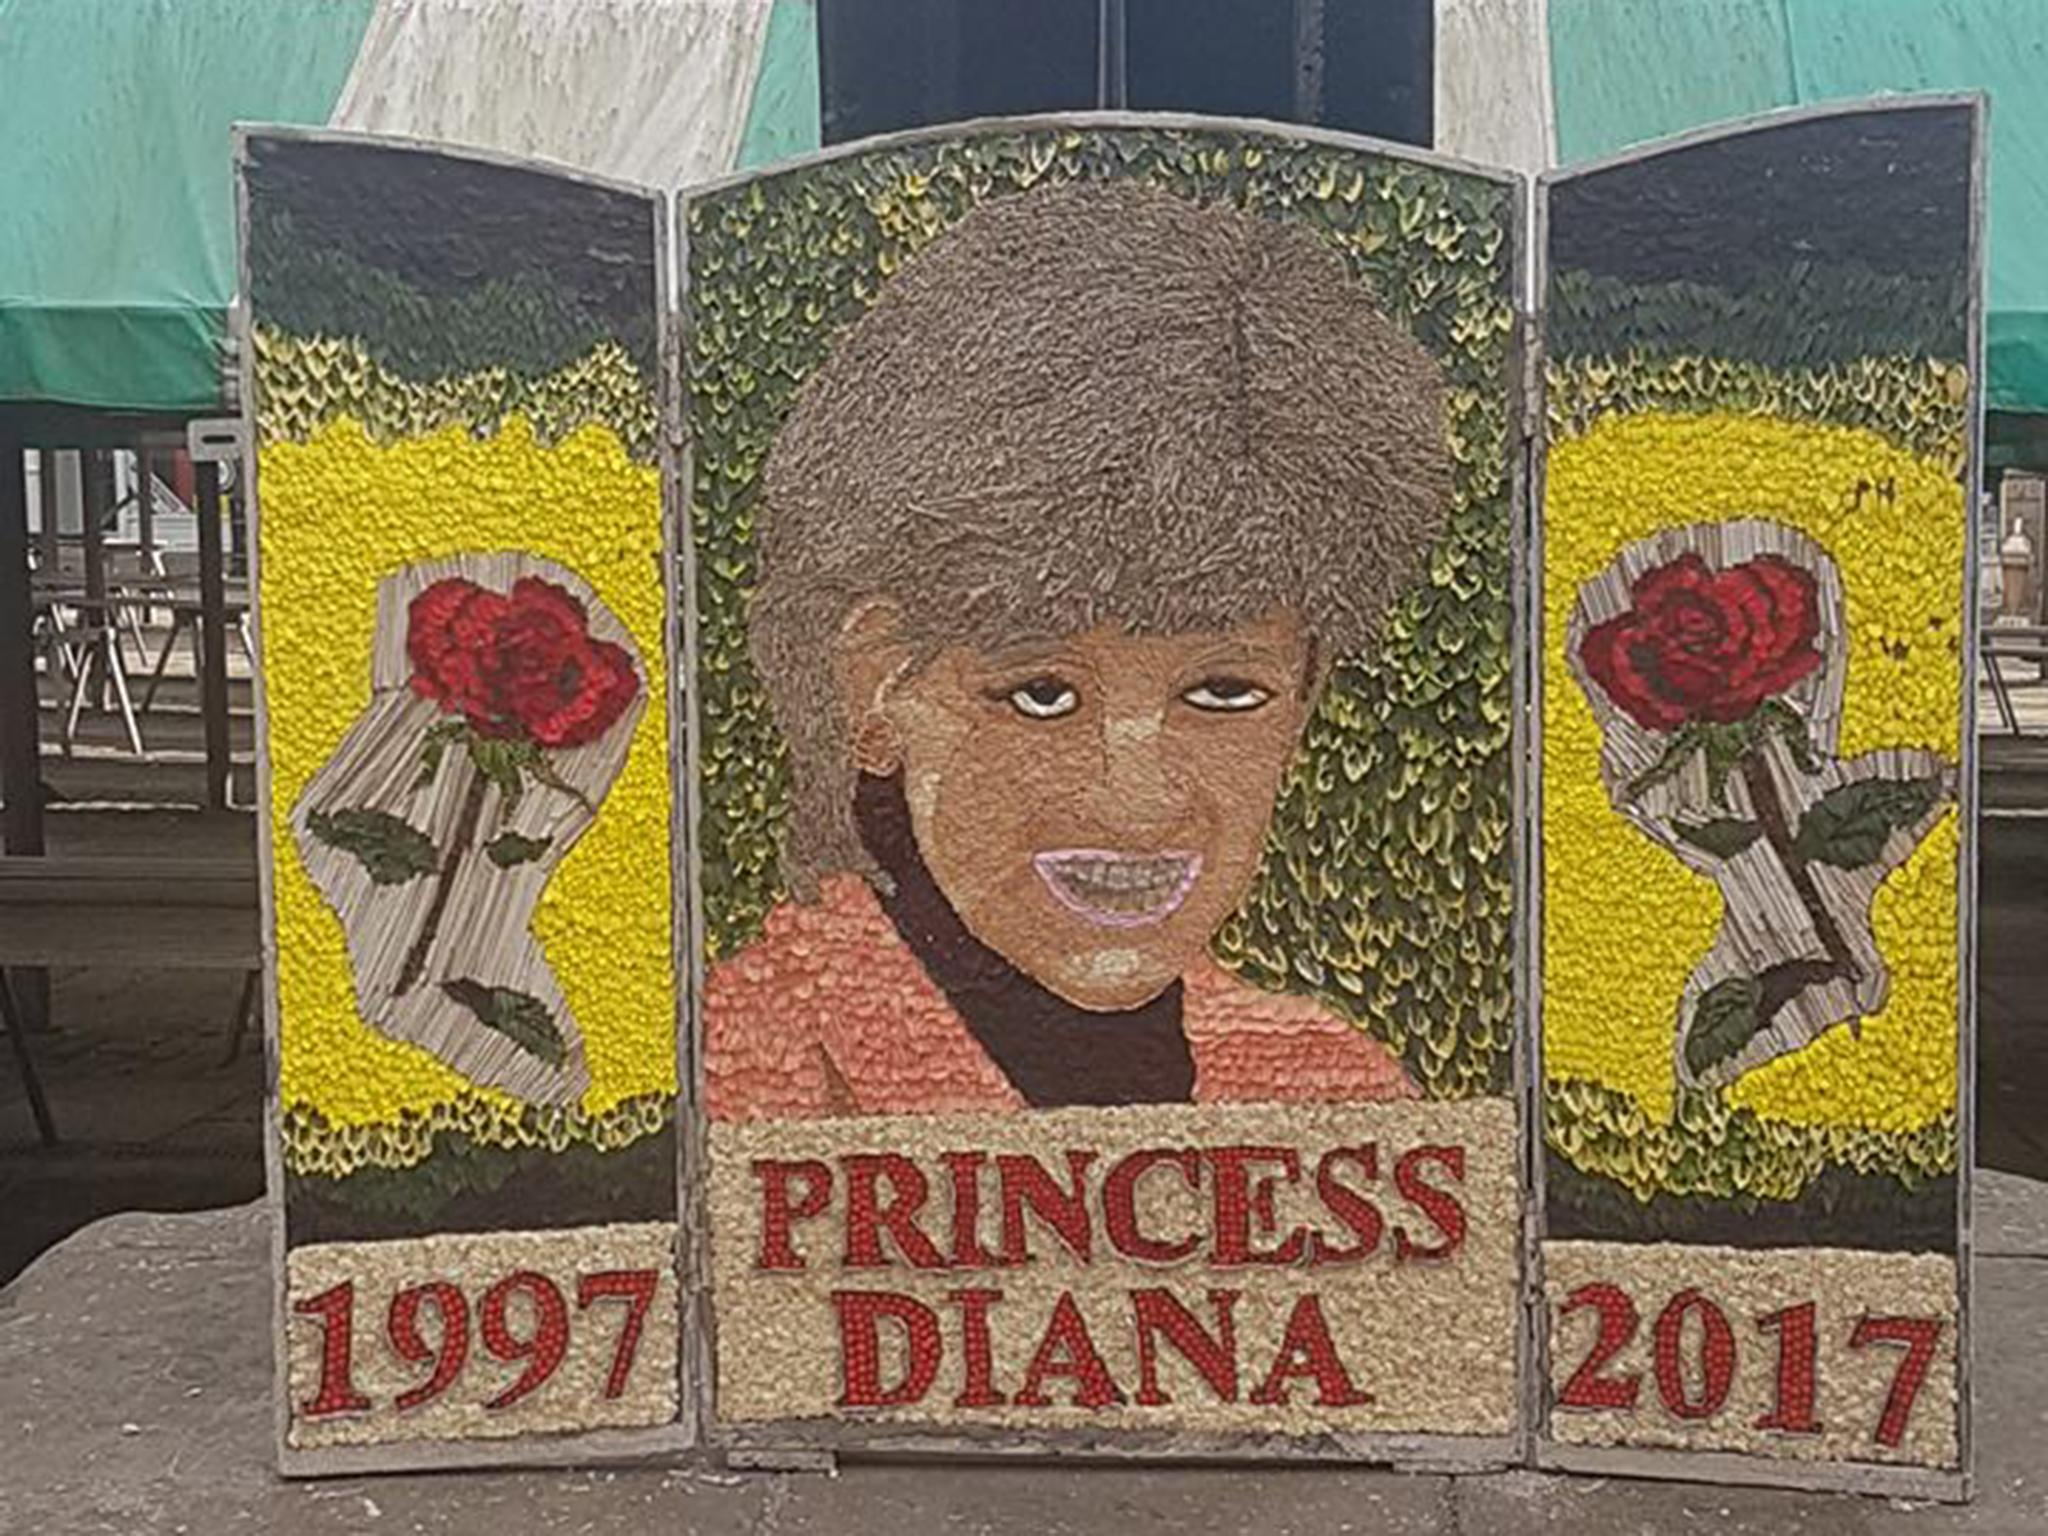 People can't quite get over the 'hideous' tribute to Princess Diana in Chesterfield